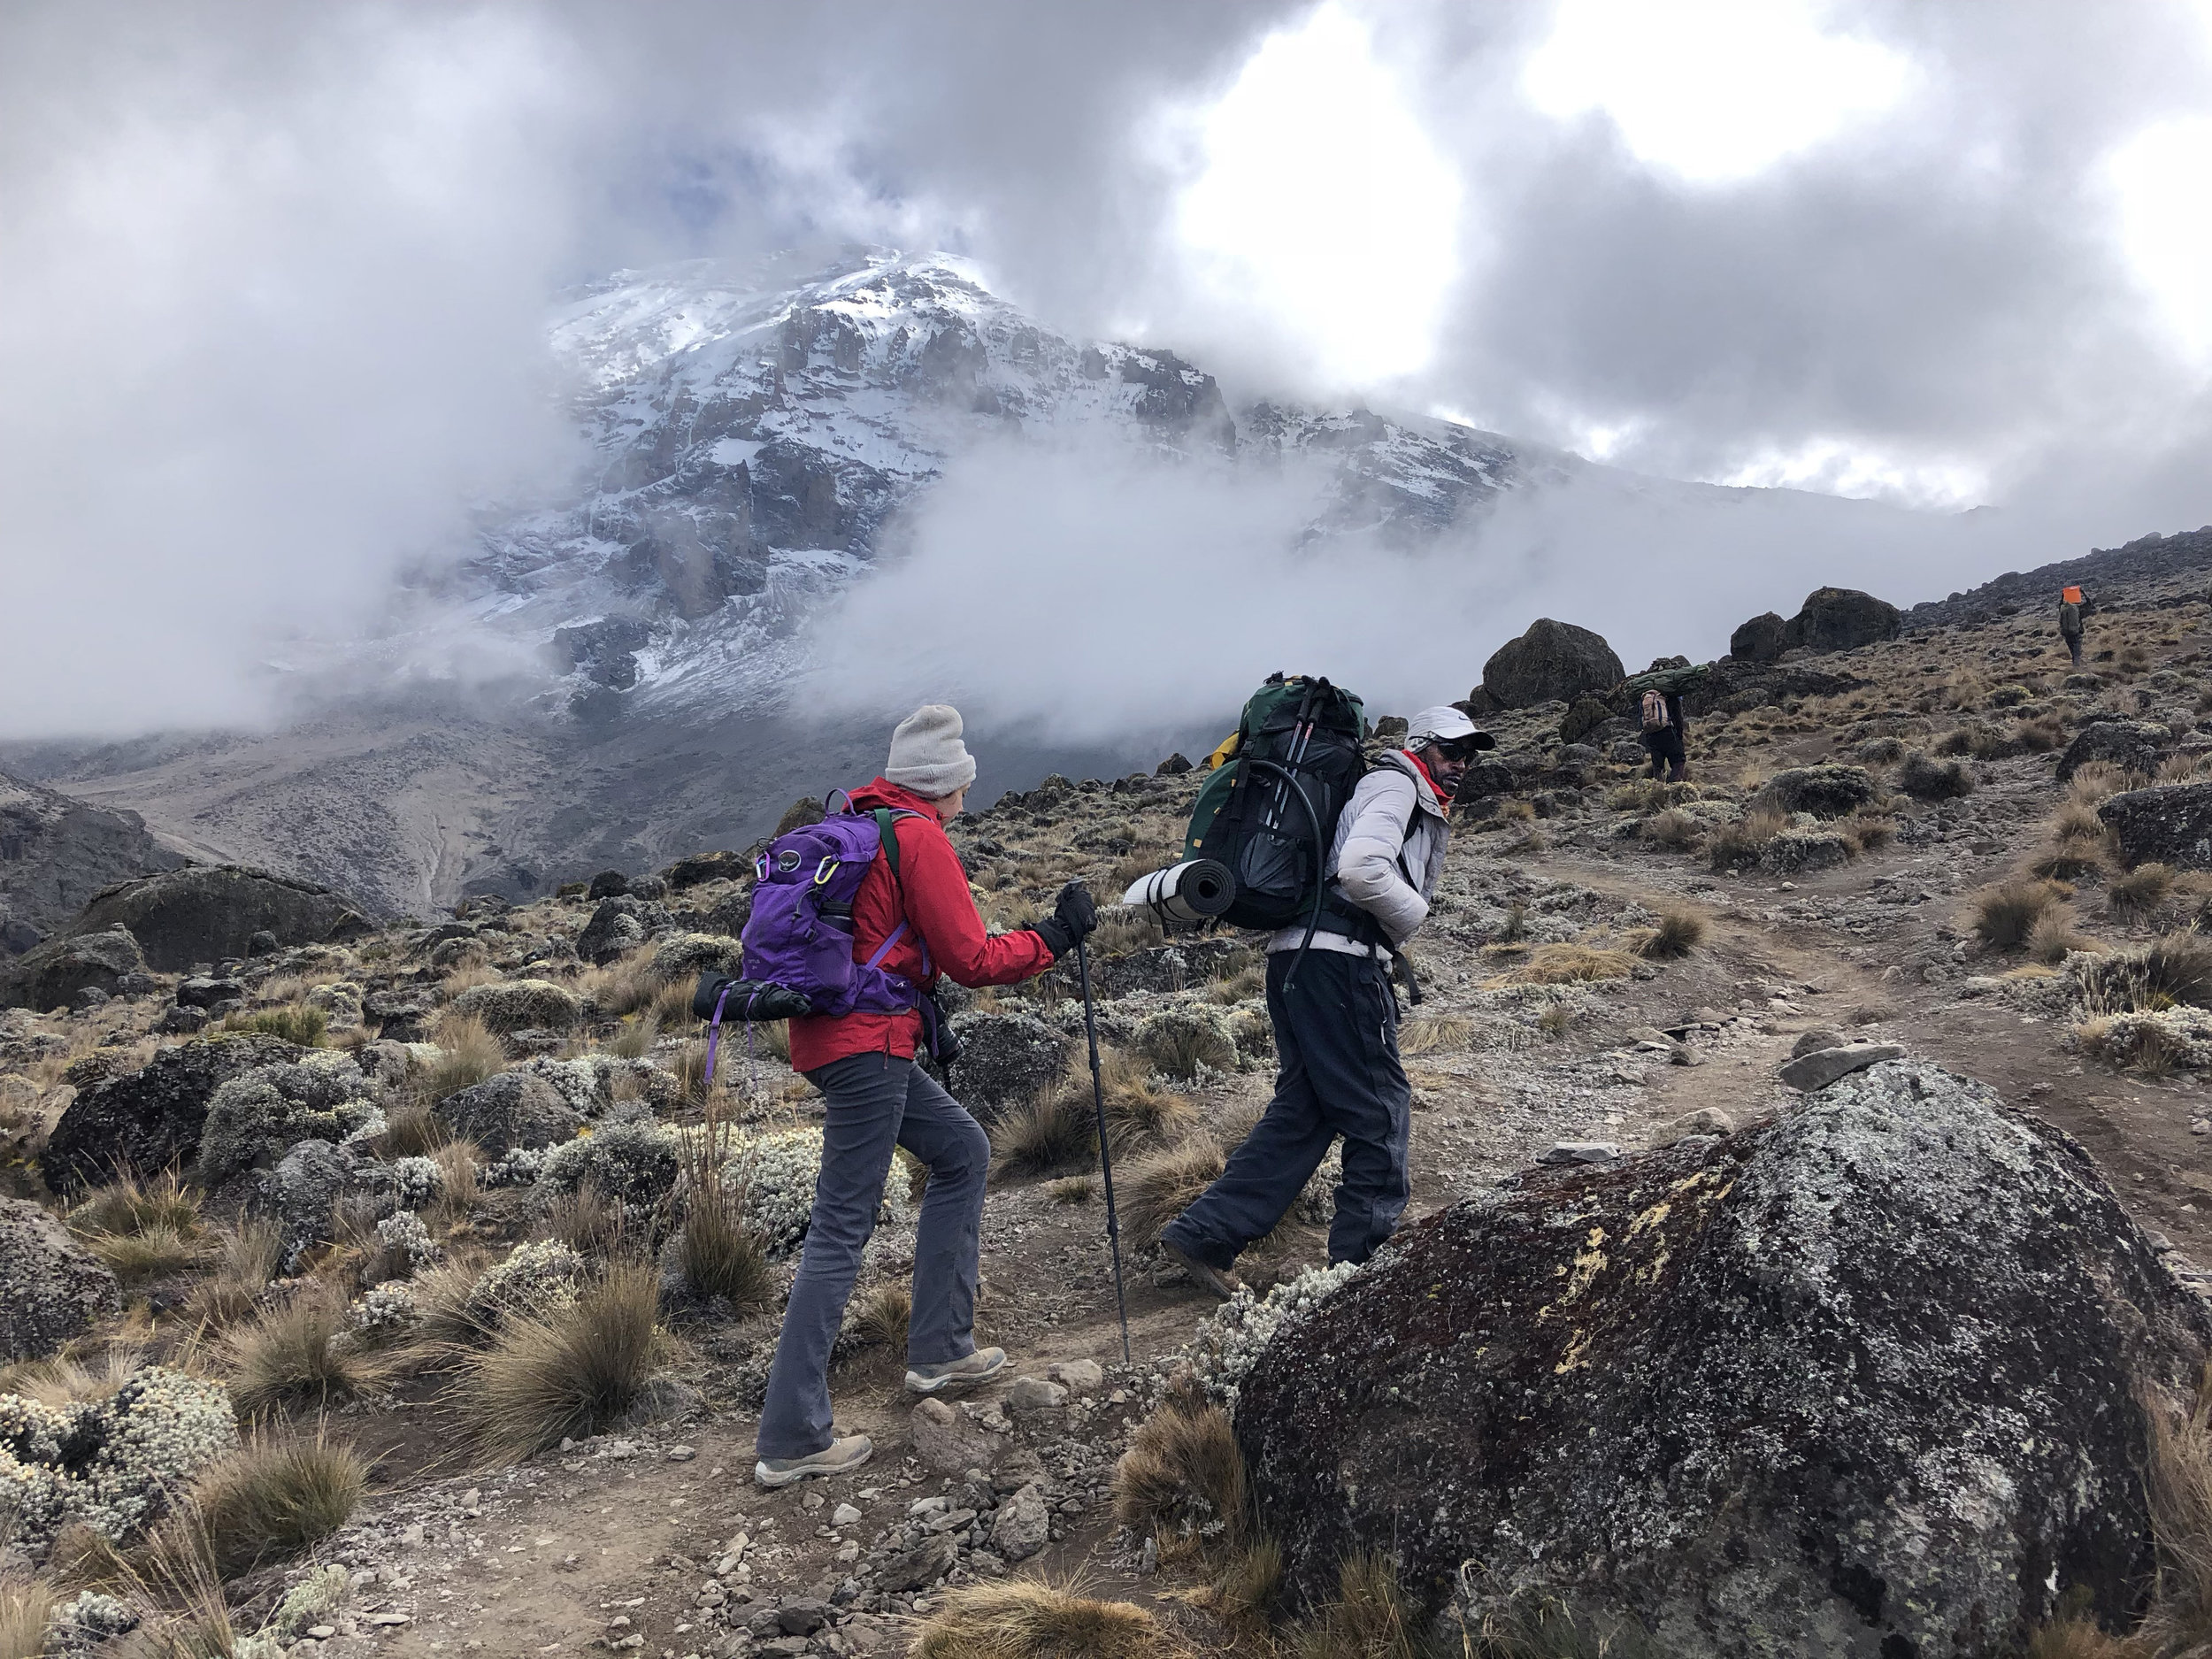 Eli, our assistant guide, and me close behind on the trail with Mt Kilimanjaro looming in the background.